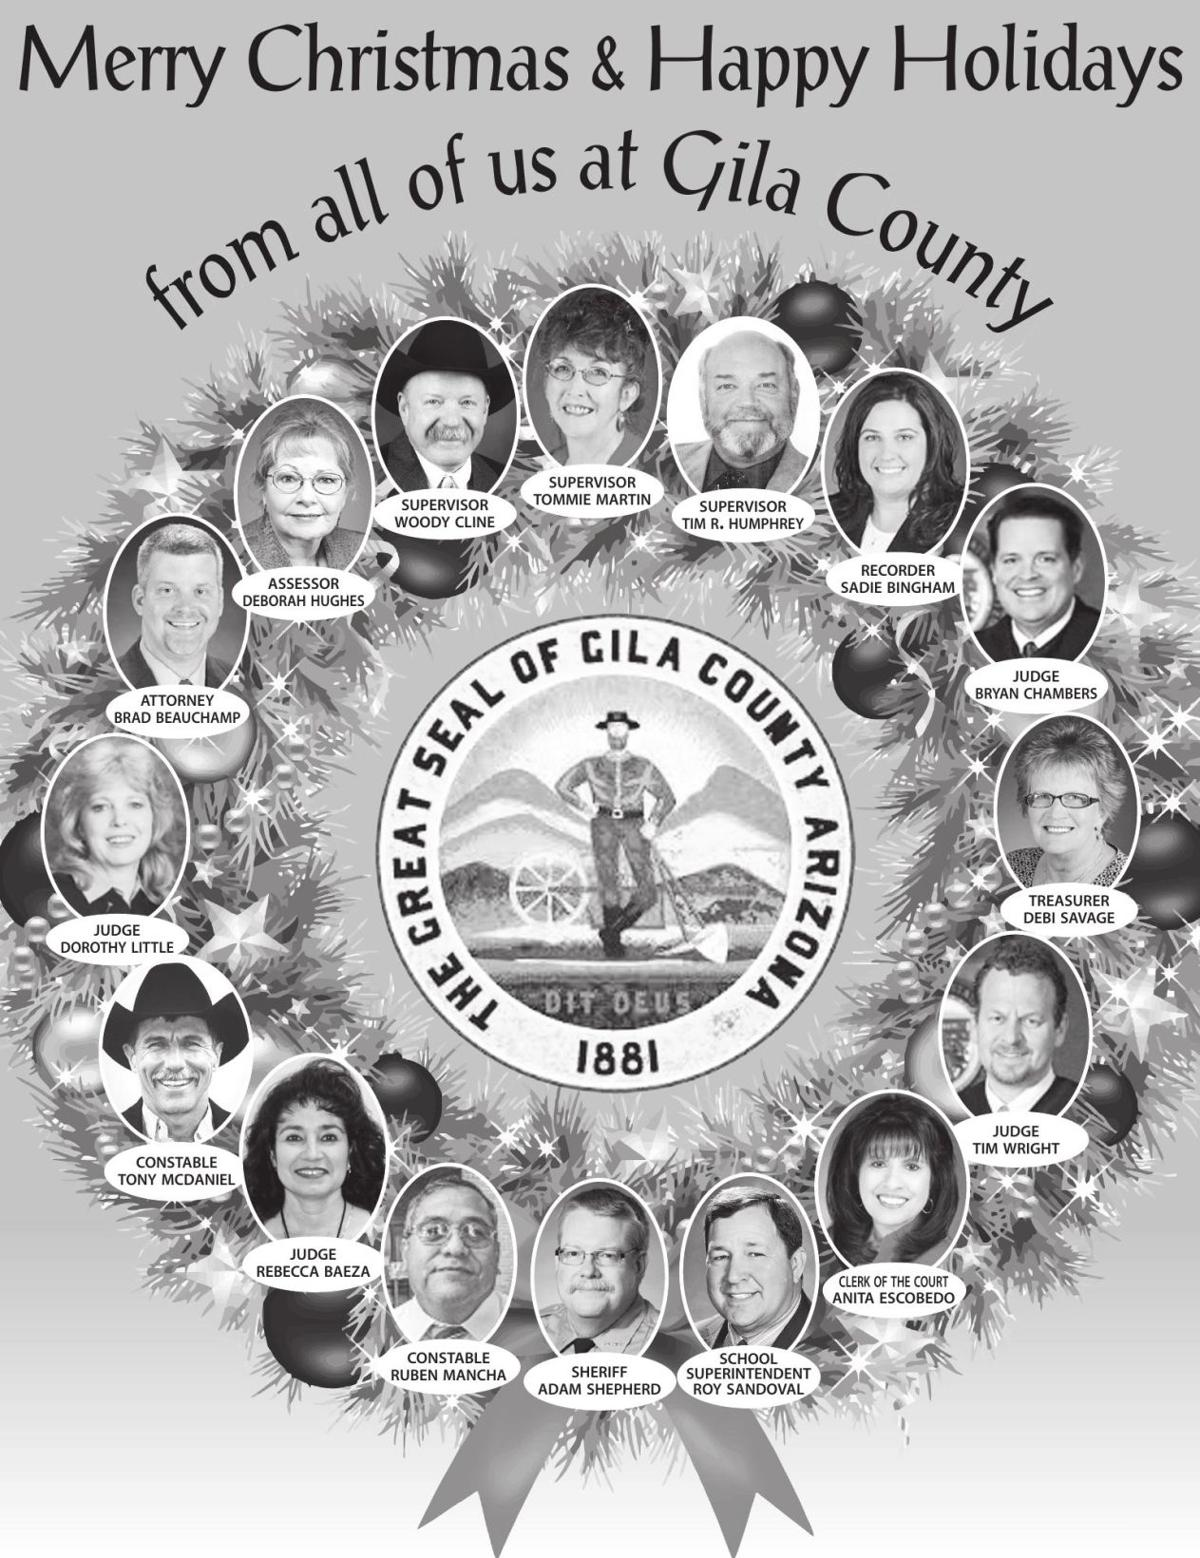 Merry Christmas from Gila County